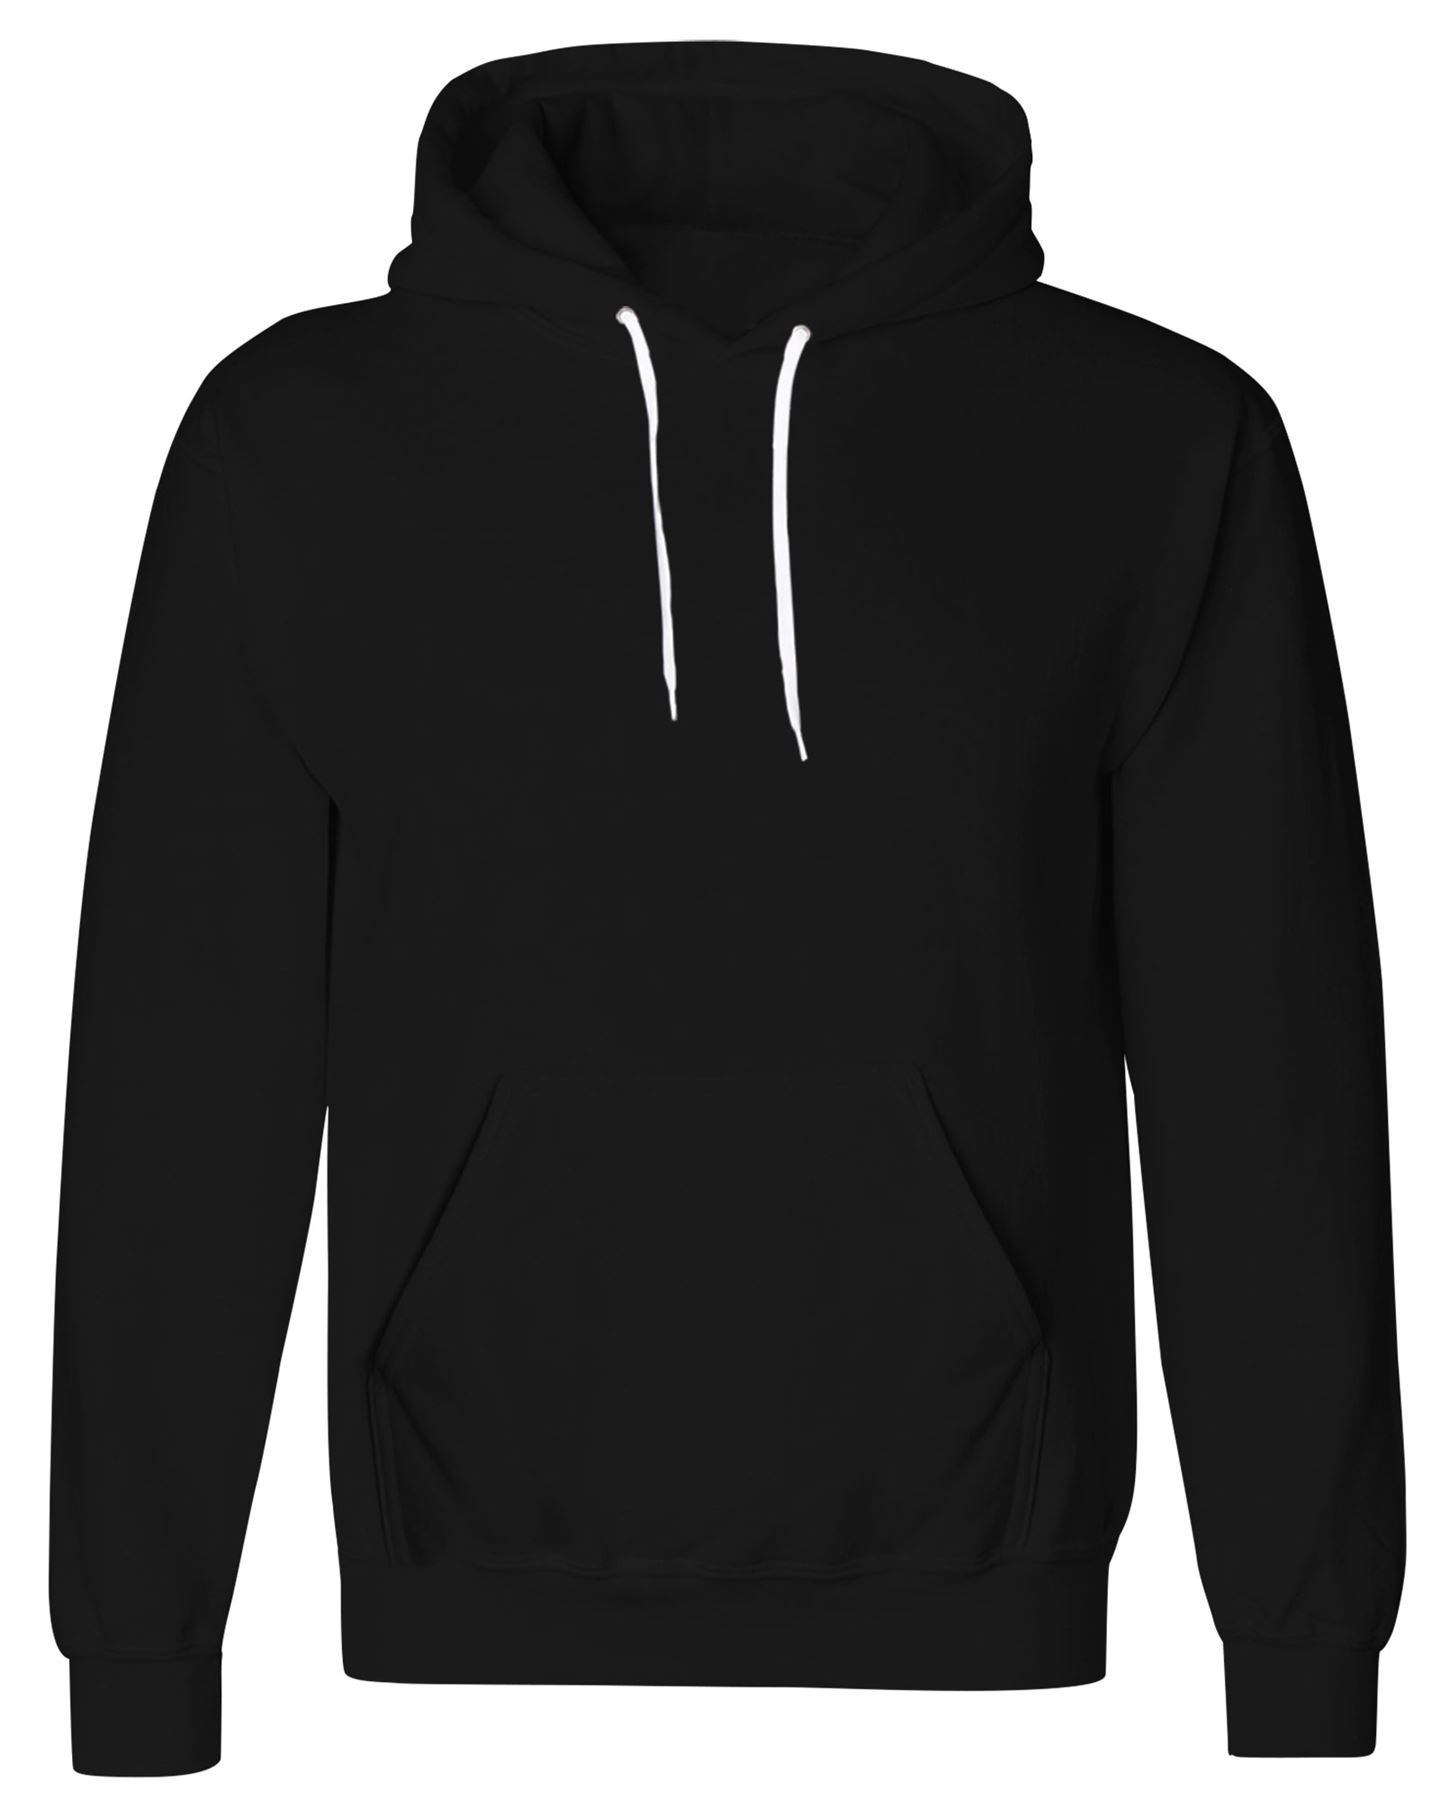 Find great deals on eBay for Plain Pullover Hoodie in Men's Sweats and Hoodies. Shop with confidence.